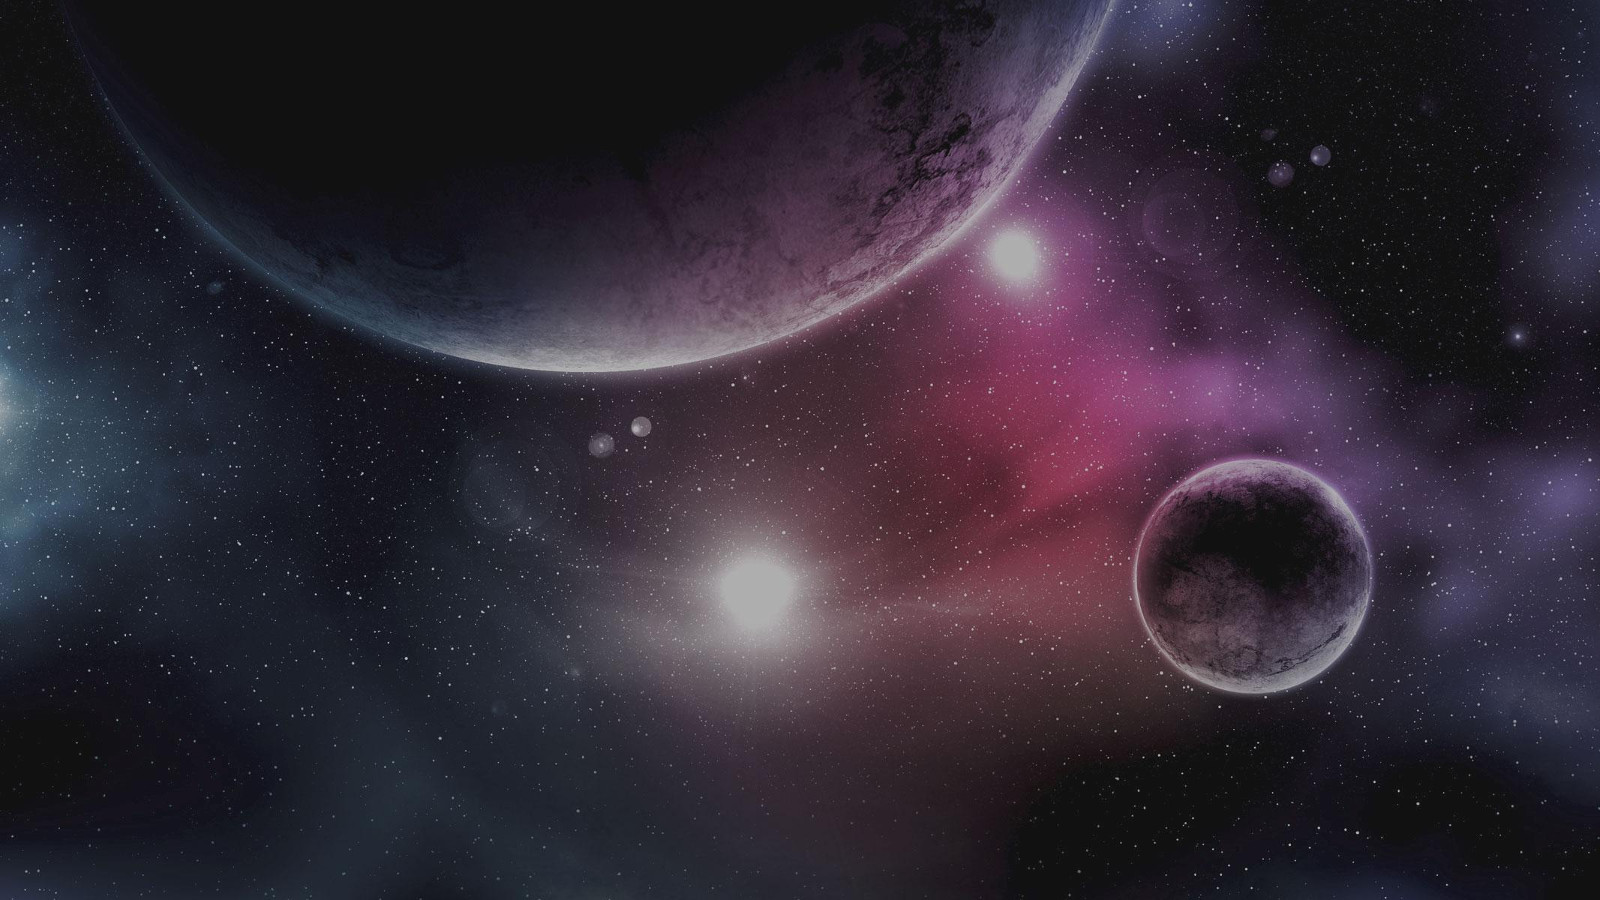 Finding Planets in the Habitable Zone